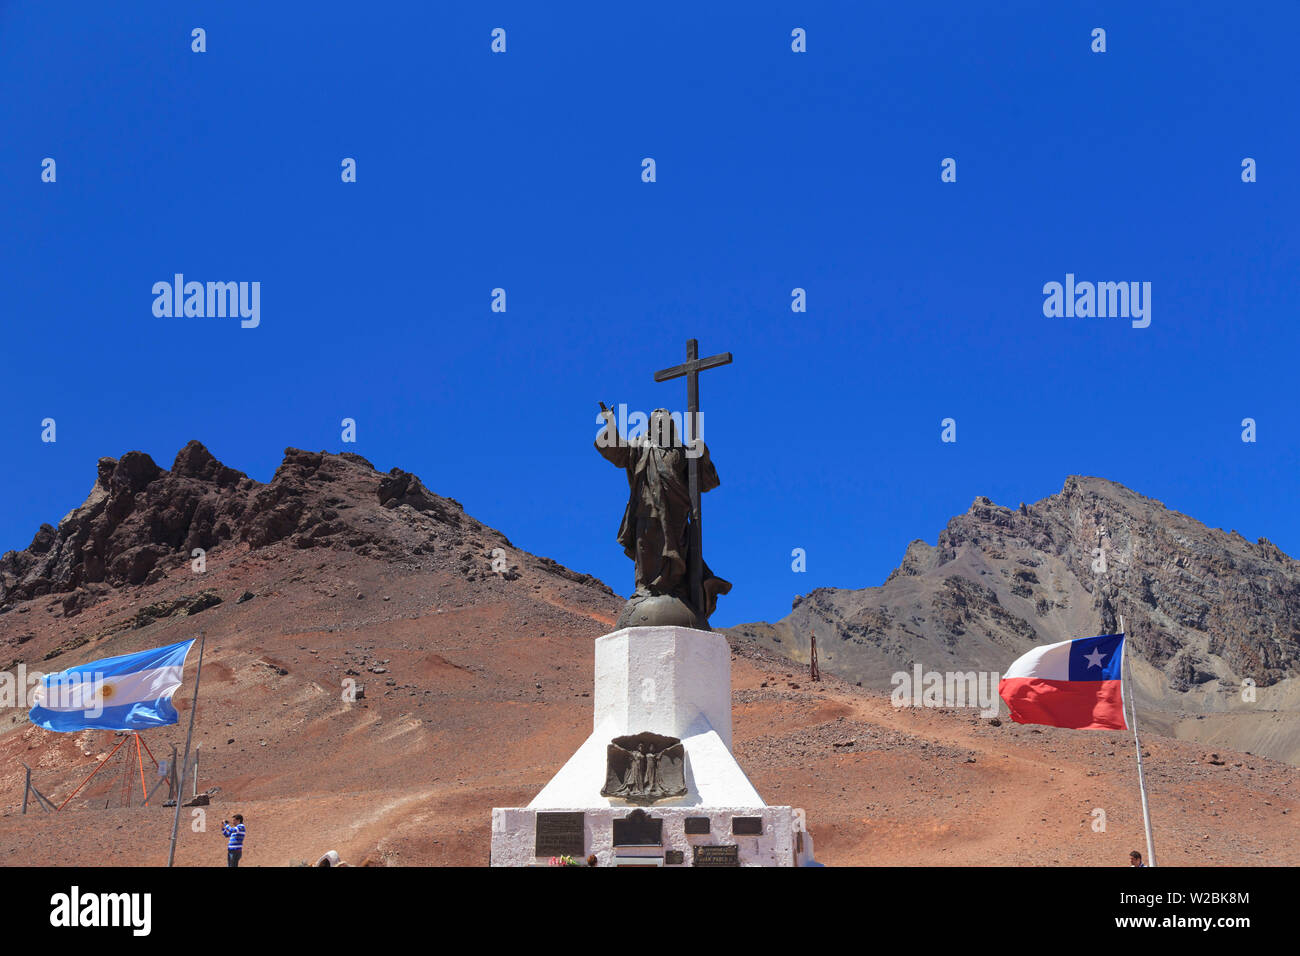 Argentina, Mendoza, Ruta 7, Christ the Redeemer statue on the border between Argentina and Chie - Stock Image